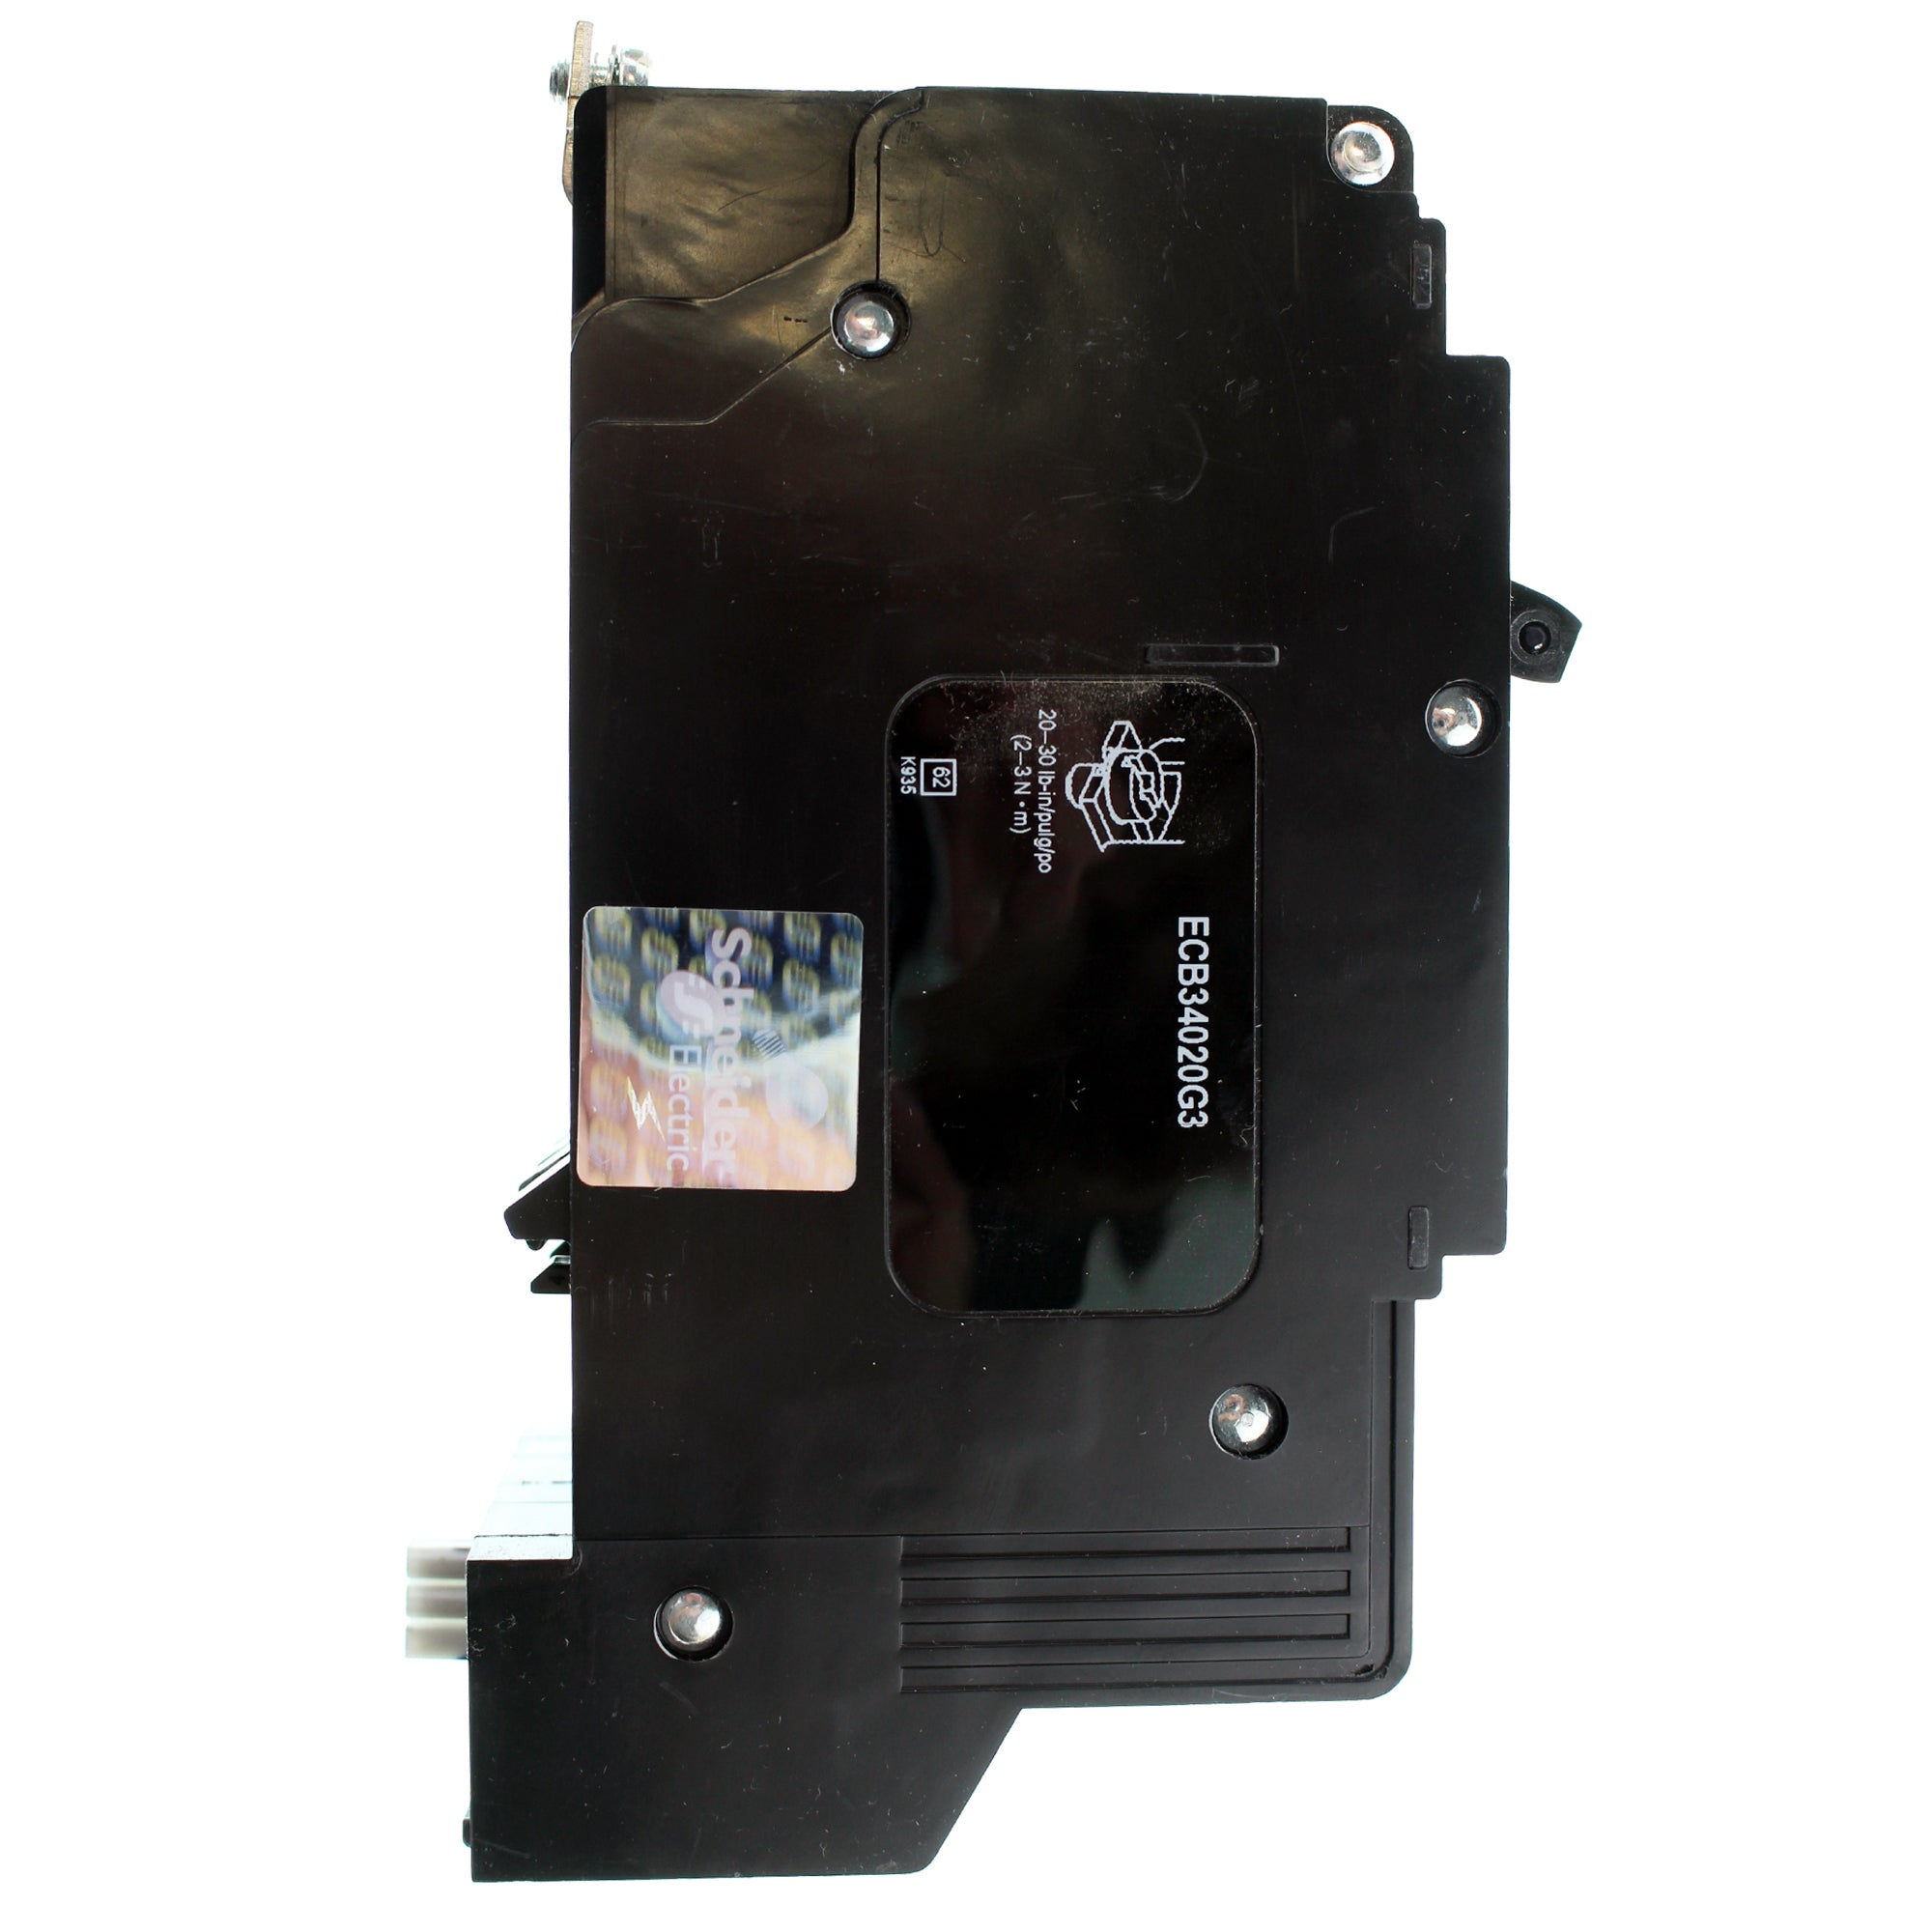 Square D Ecb34020g3 Type Ecb Bolt On Circuit Breaker 480y 277v 20a Remote Controlled 20 Amp 1 Pole